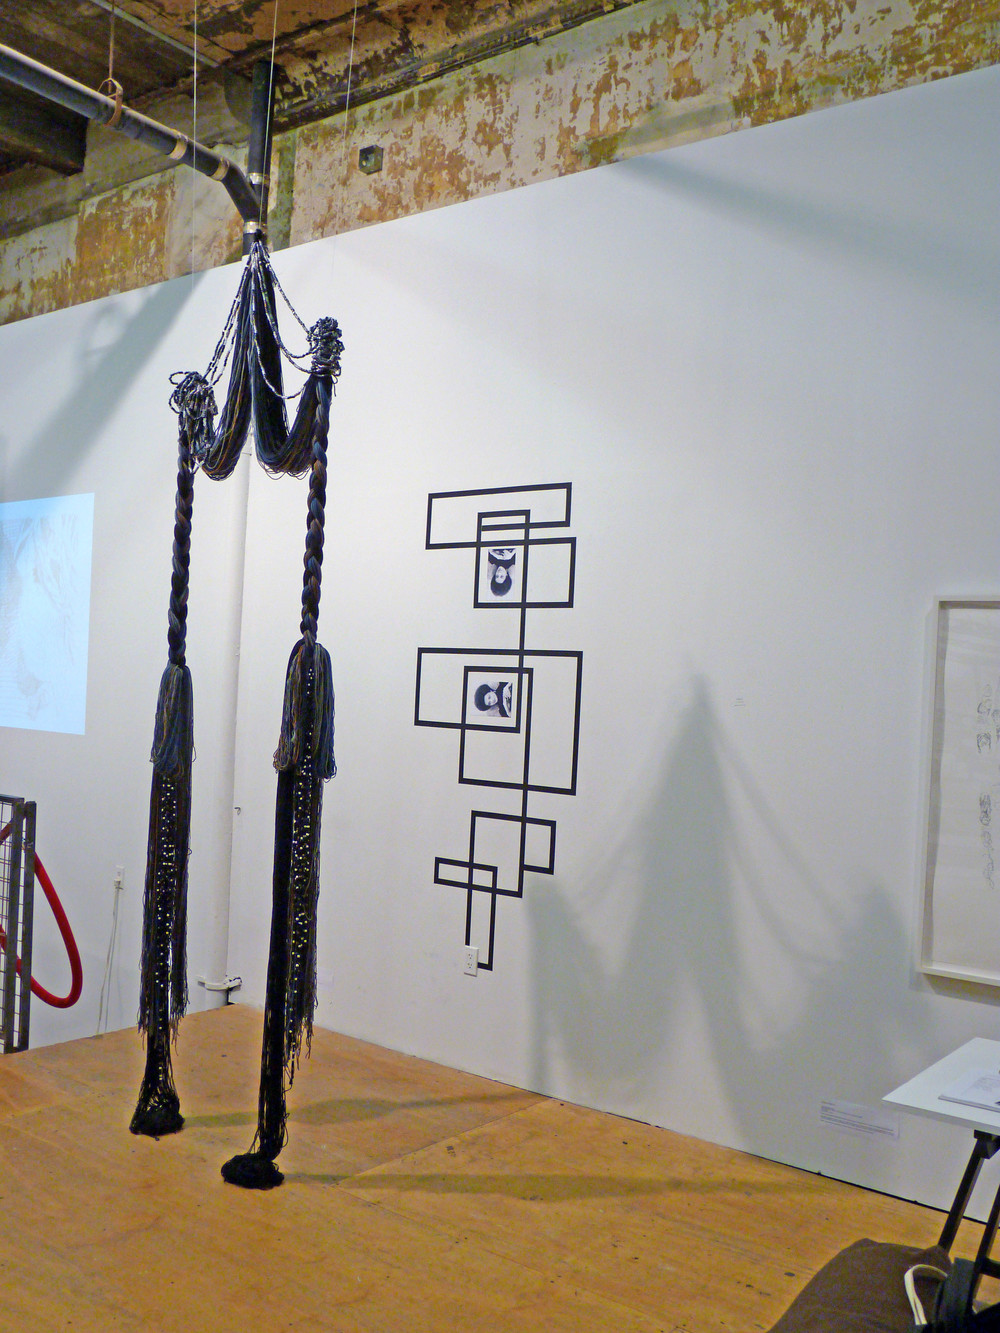 Rico Gatson and Ellie Murphy, Untitled, 2010, Gaffers tape, inkjet prints, Acrylic and wool yarn, plastic pony beads, monofilament fishing line, 3' x 11' x 3' (Installtion from Collective Show)